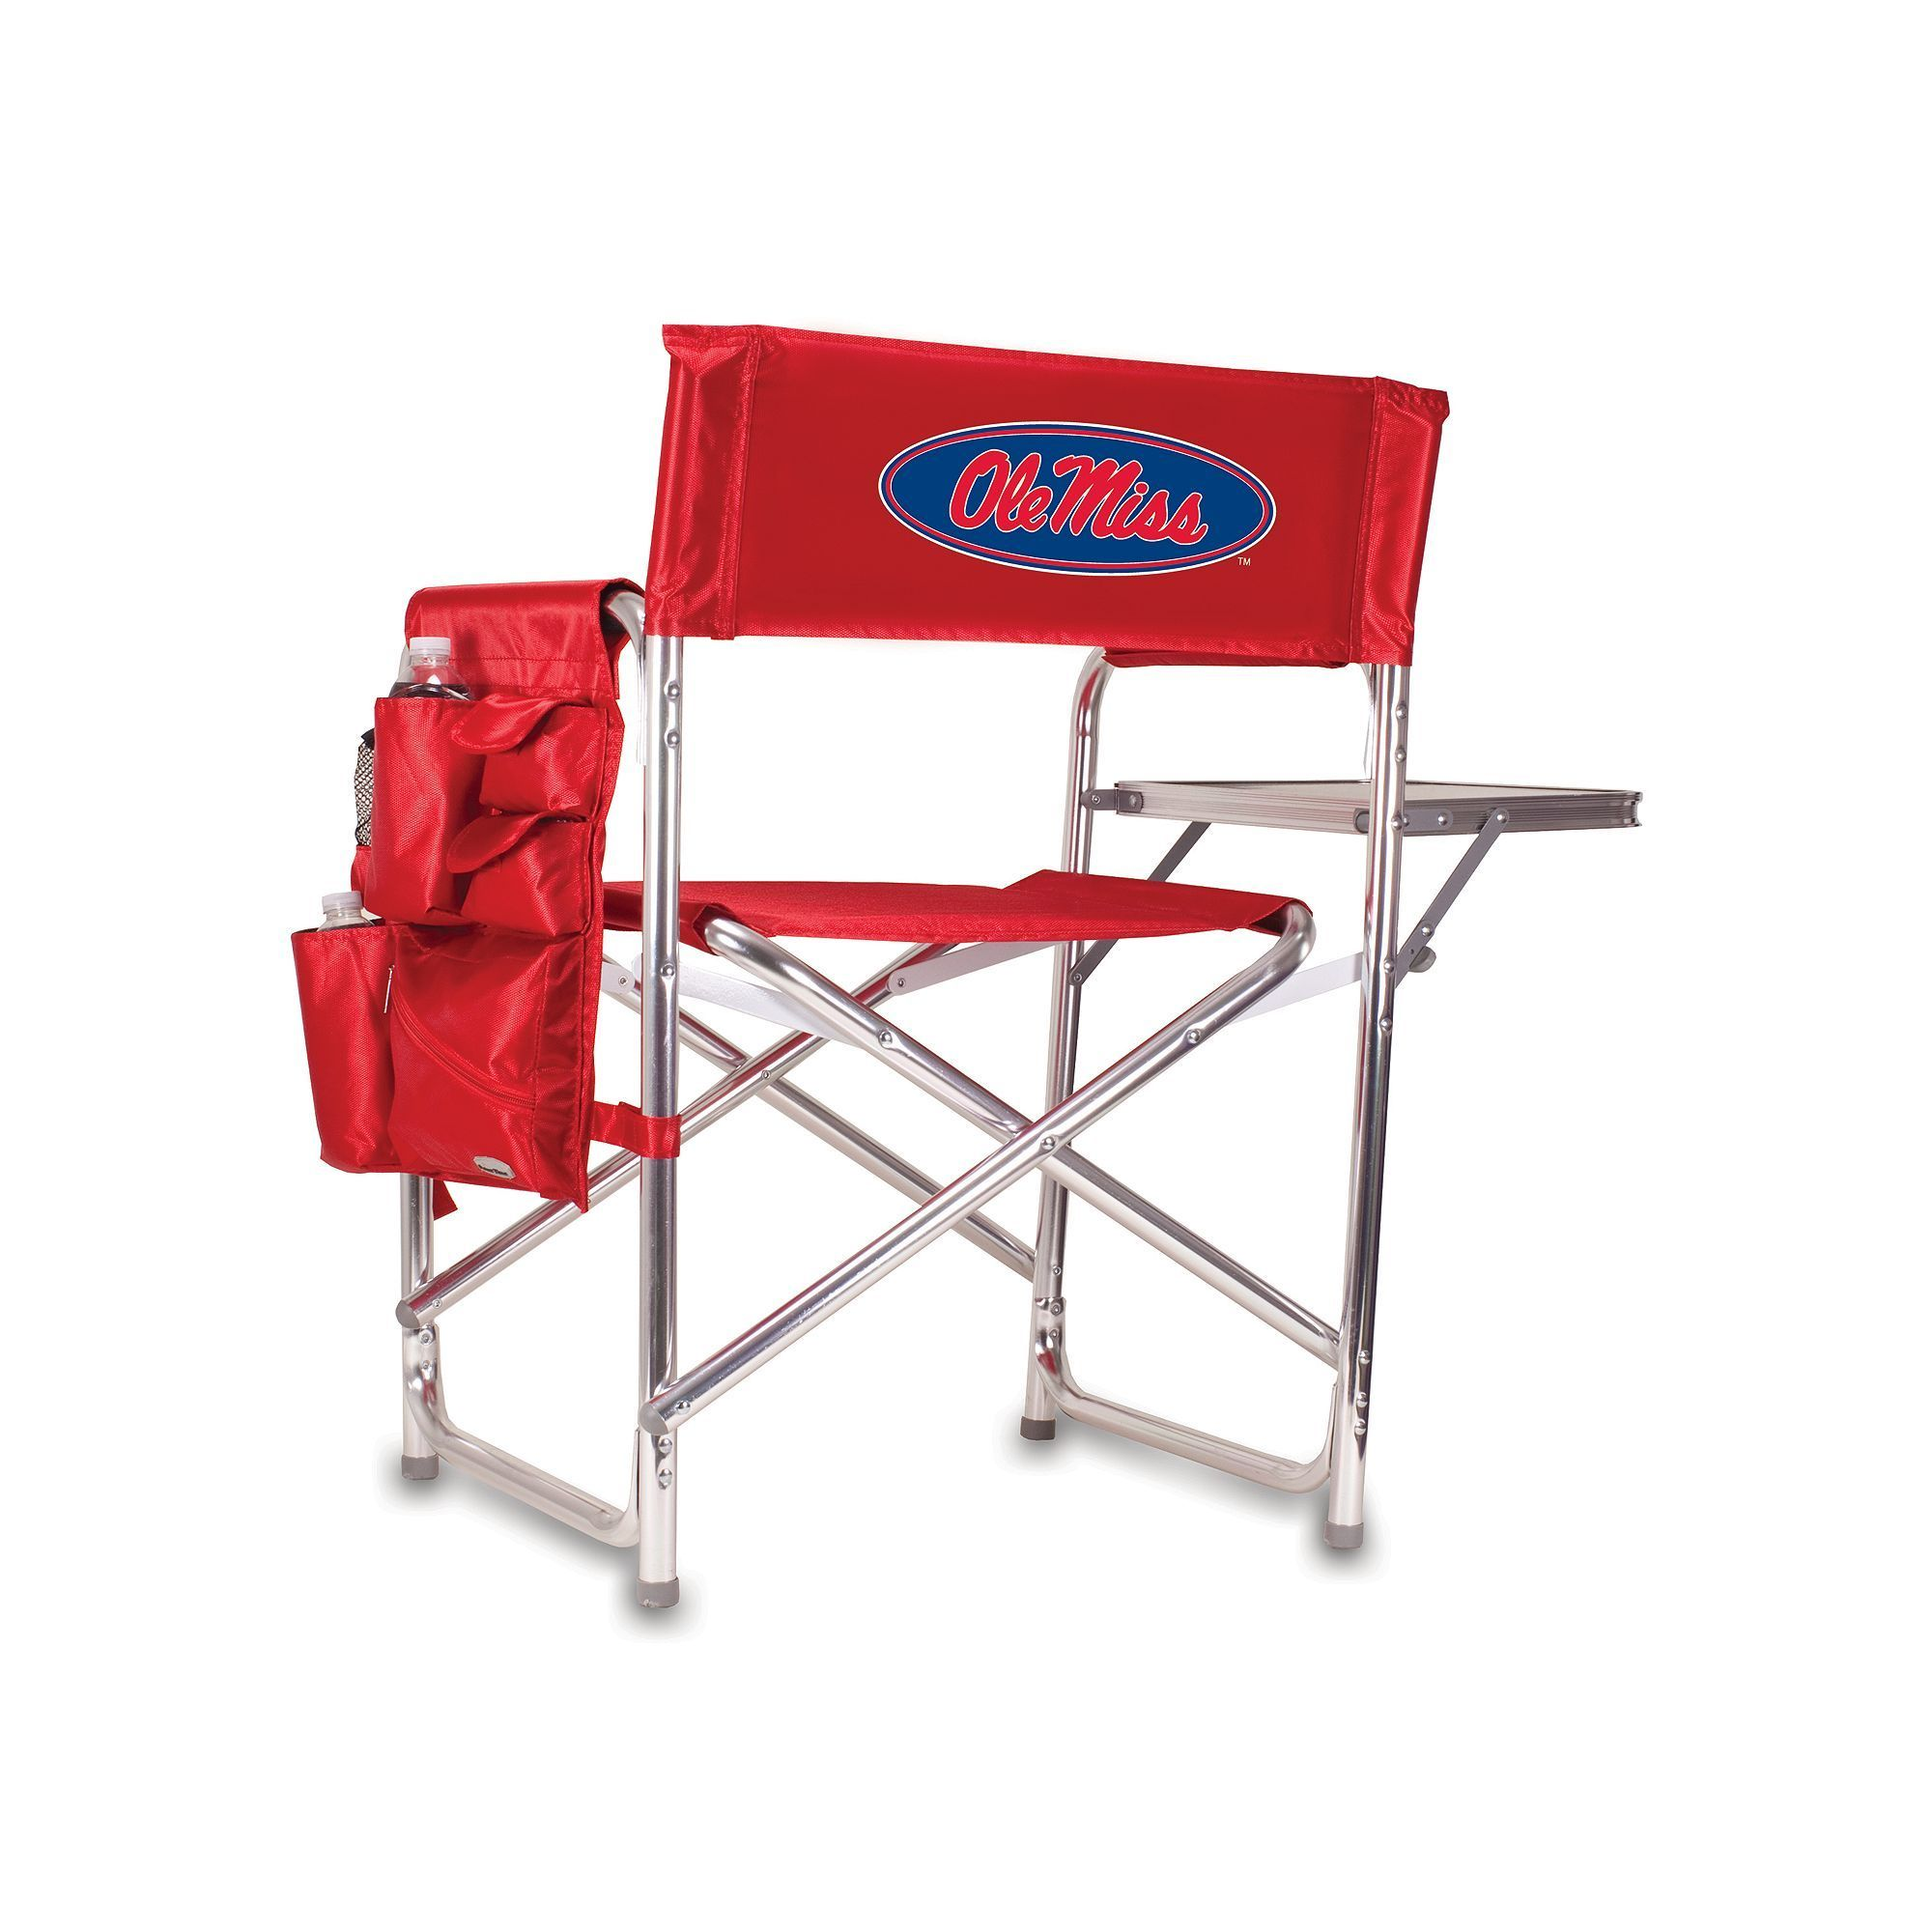 Outdoor Ole Miss Rebels Sports Chair, Red